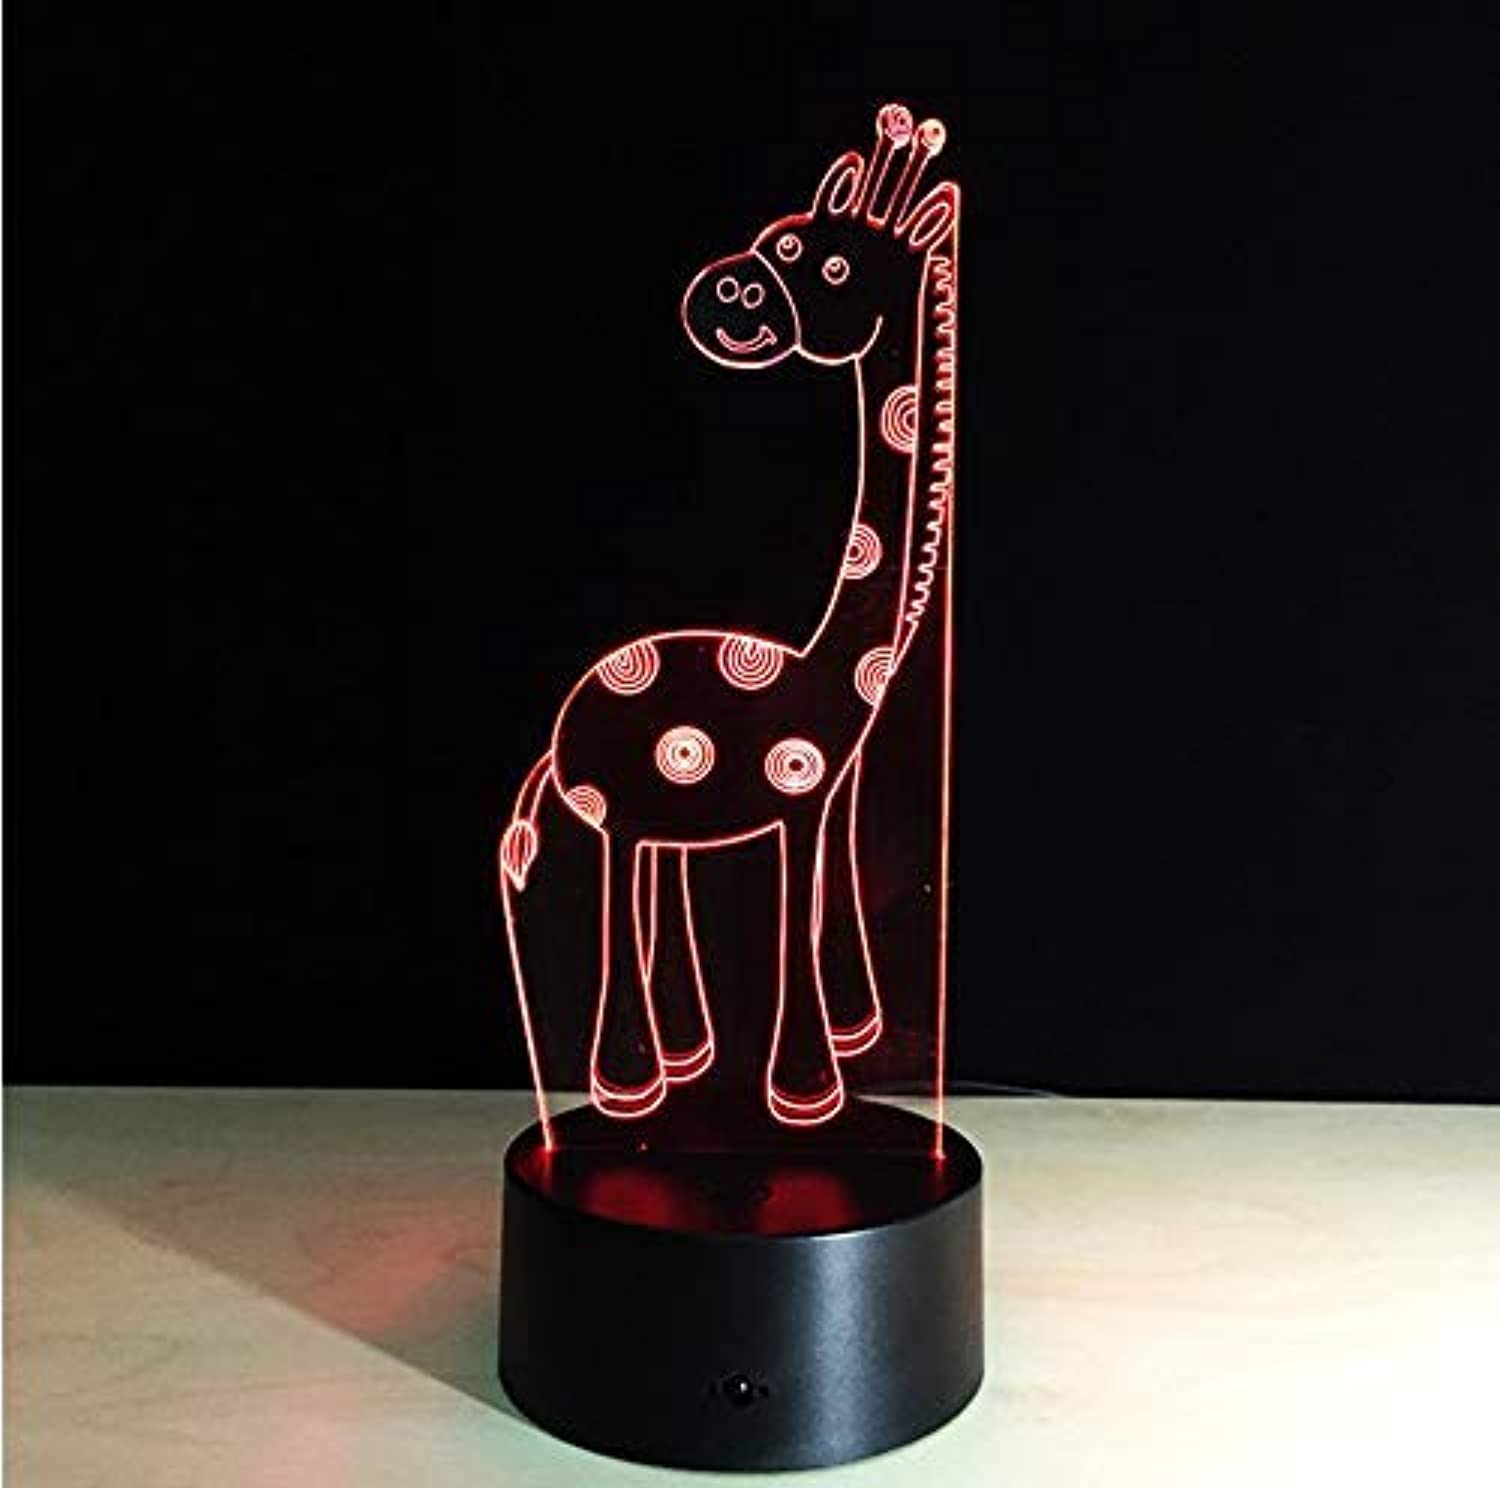 BMY Cute Giraff3D Lamp Led Night Light with 7 color Changing Remot Touch Table Lamp USB Optical Illusion Atmosphere Lamp Xmas Gift